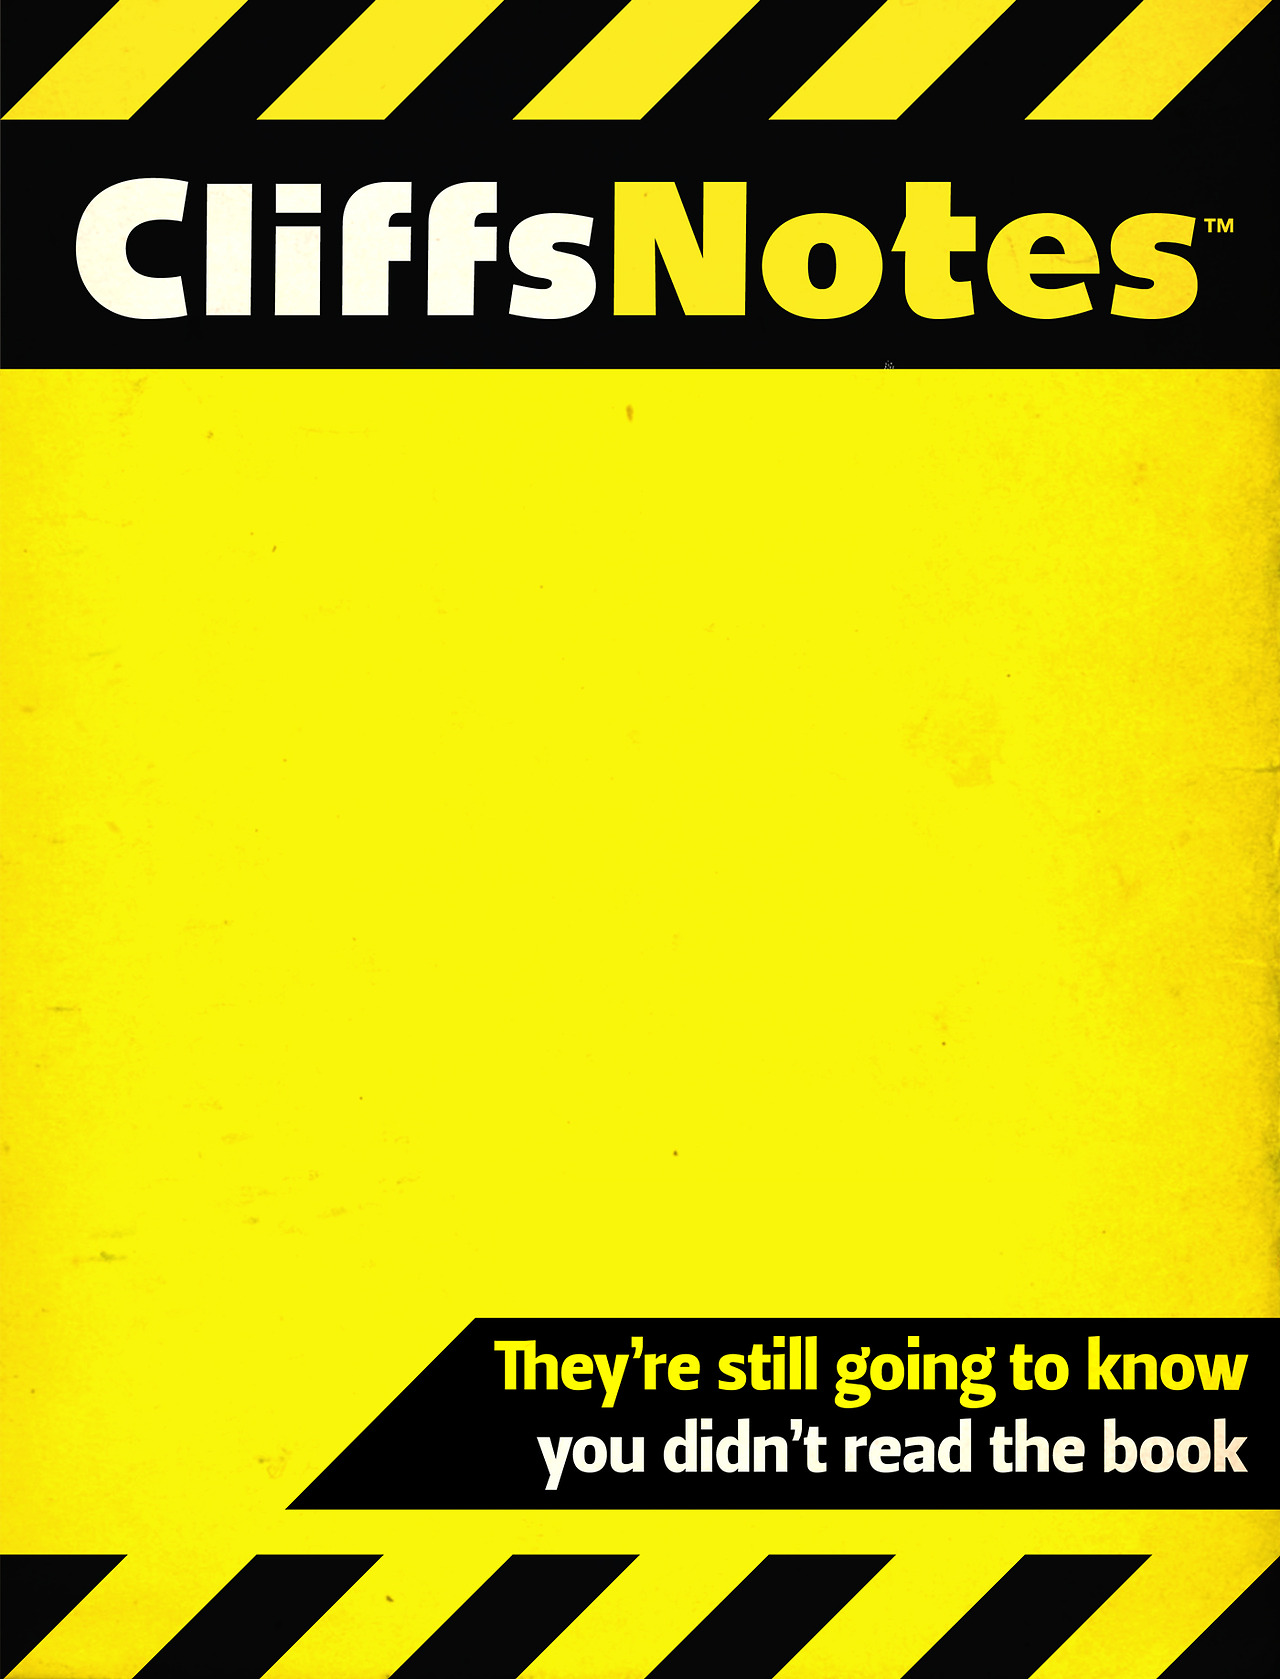 Just in case here are the cliffs notes